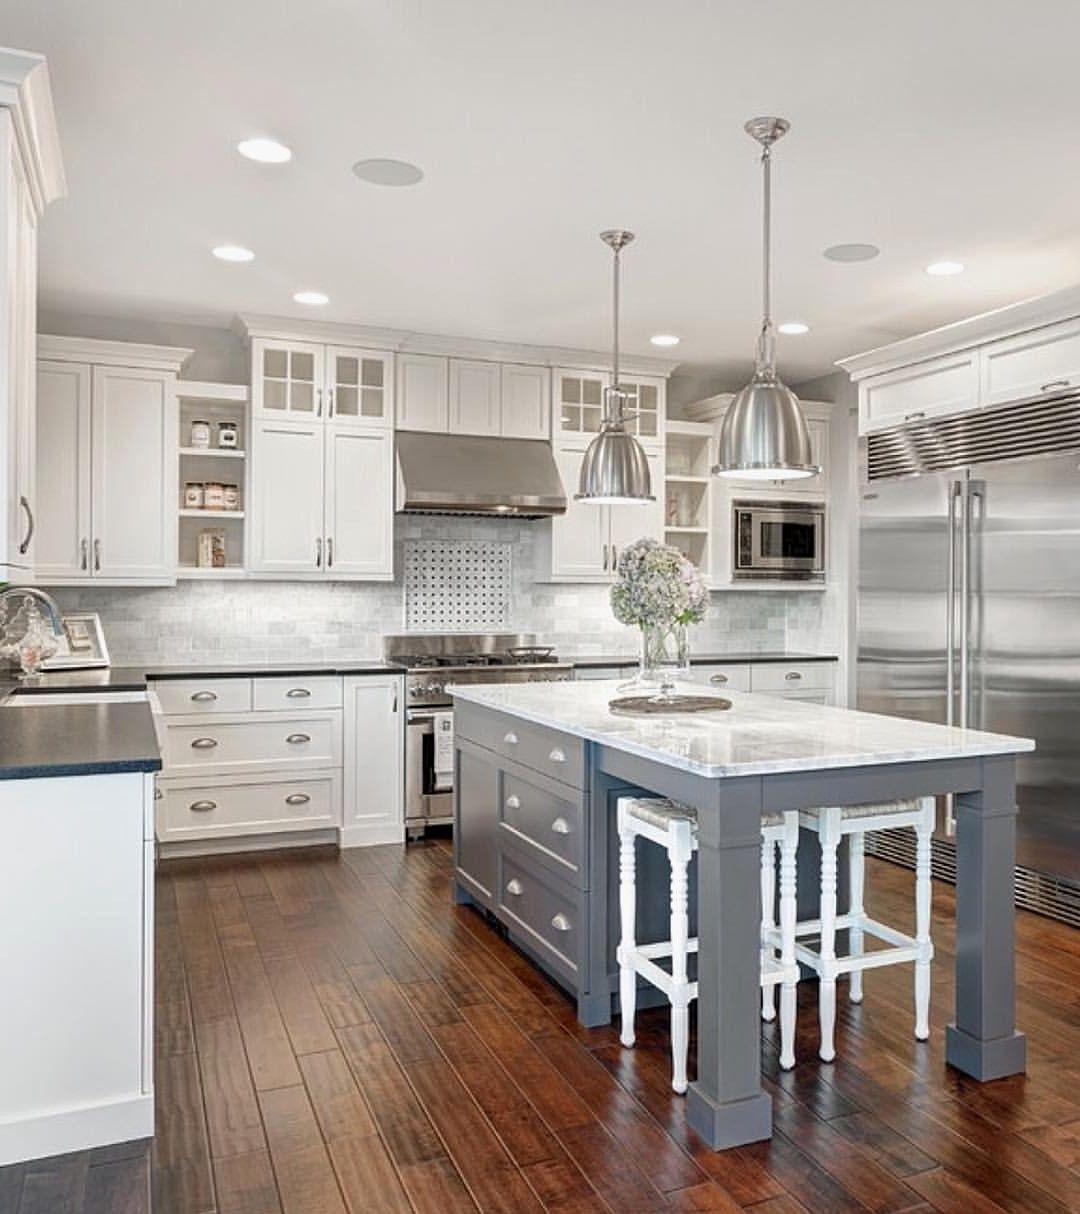 Ideas To Decorate The White Cabinets For Your Kitchen Whitekitchencabinets Whitekitch Grey Kitchen Island Contrasting Kitchen Cabinets Gray And White Kitchen